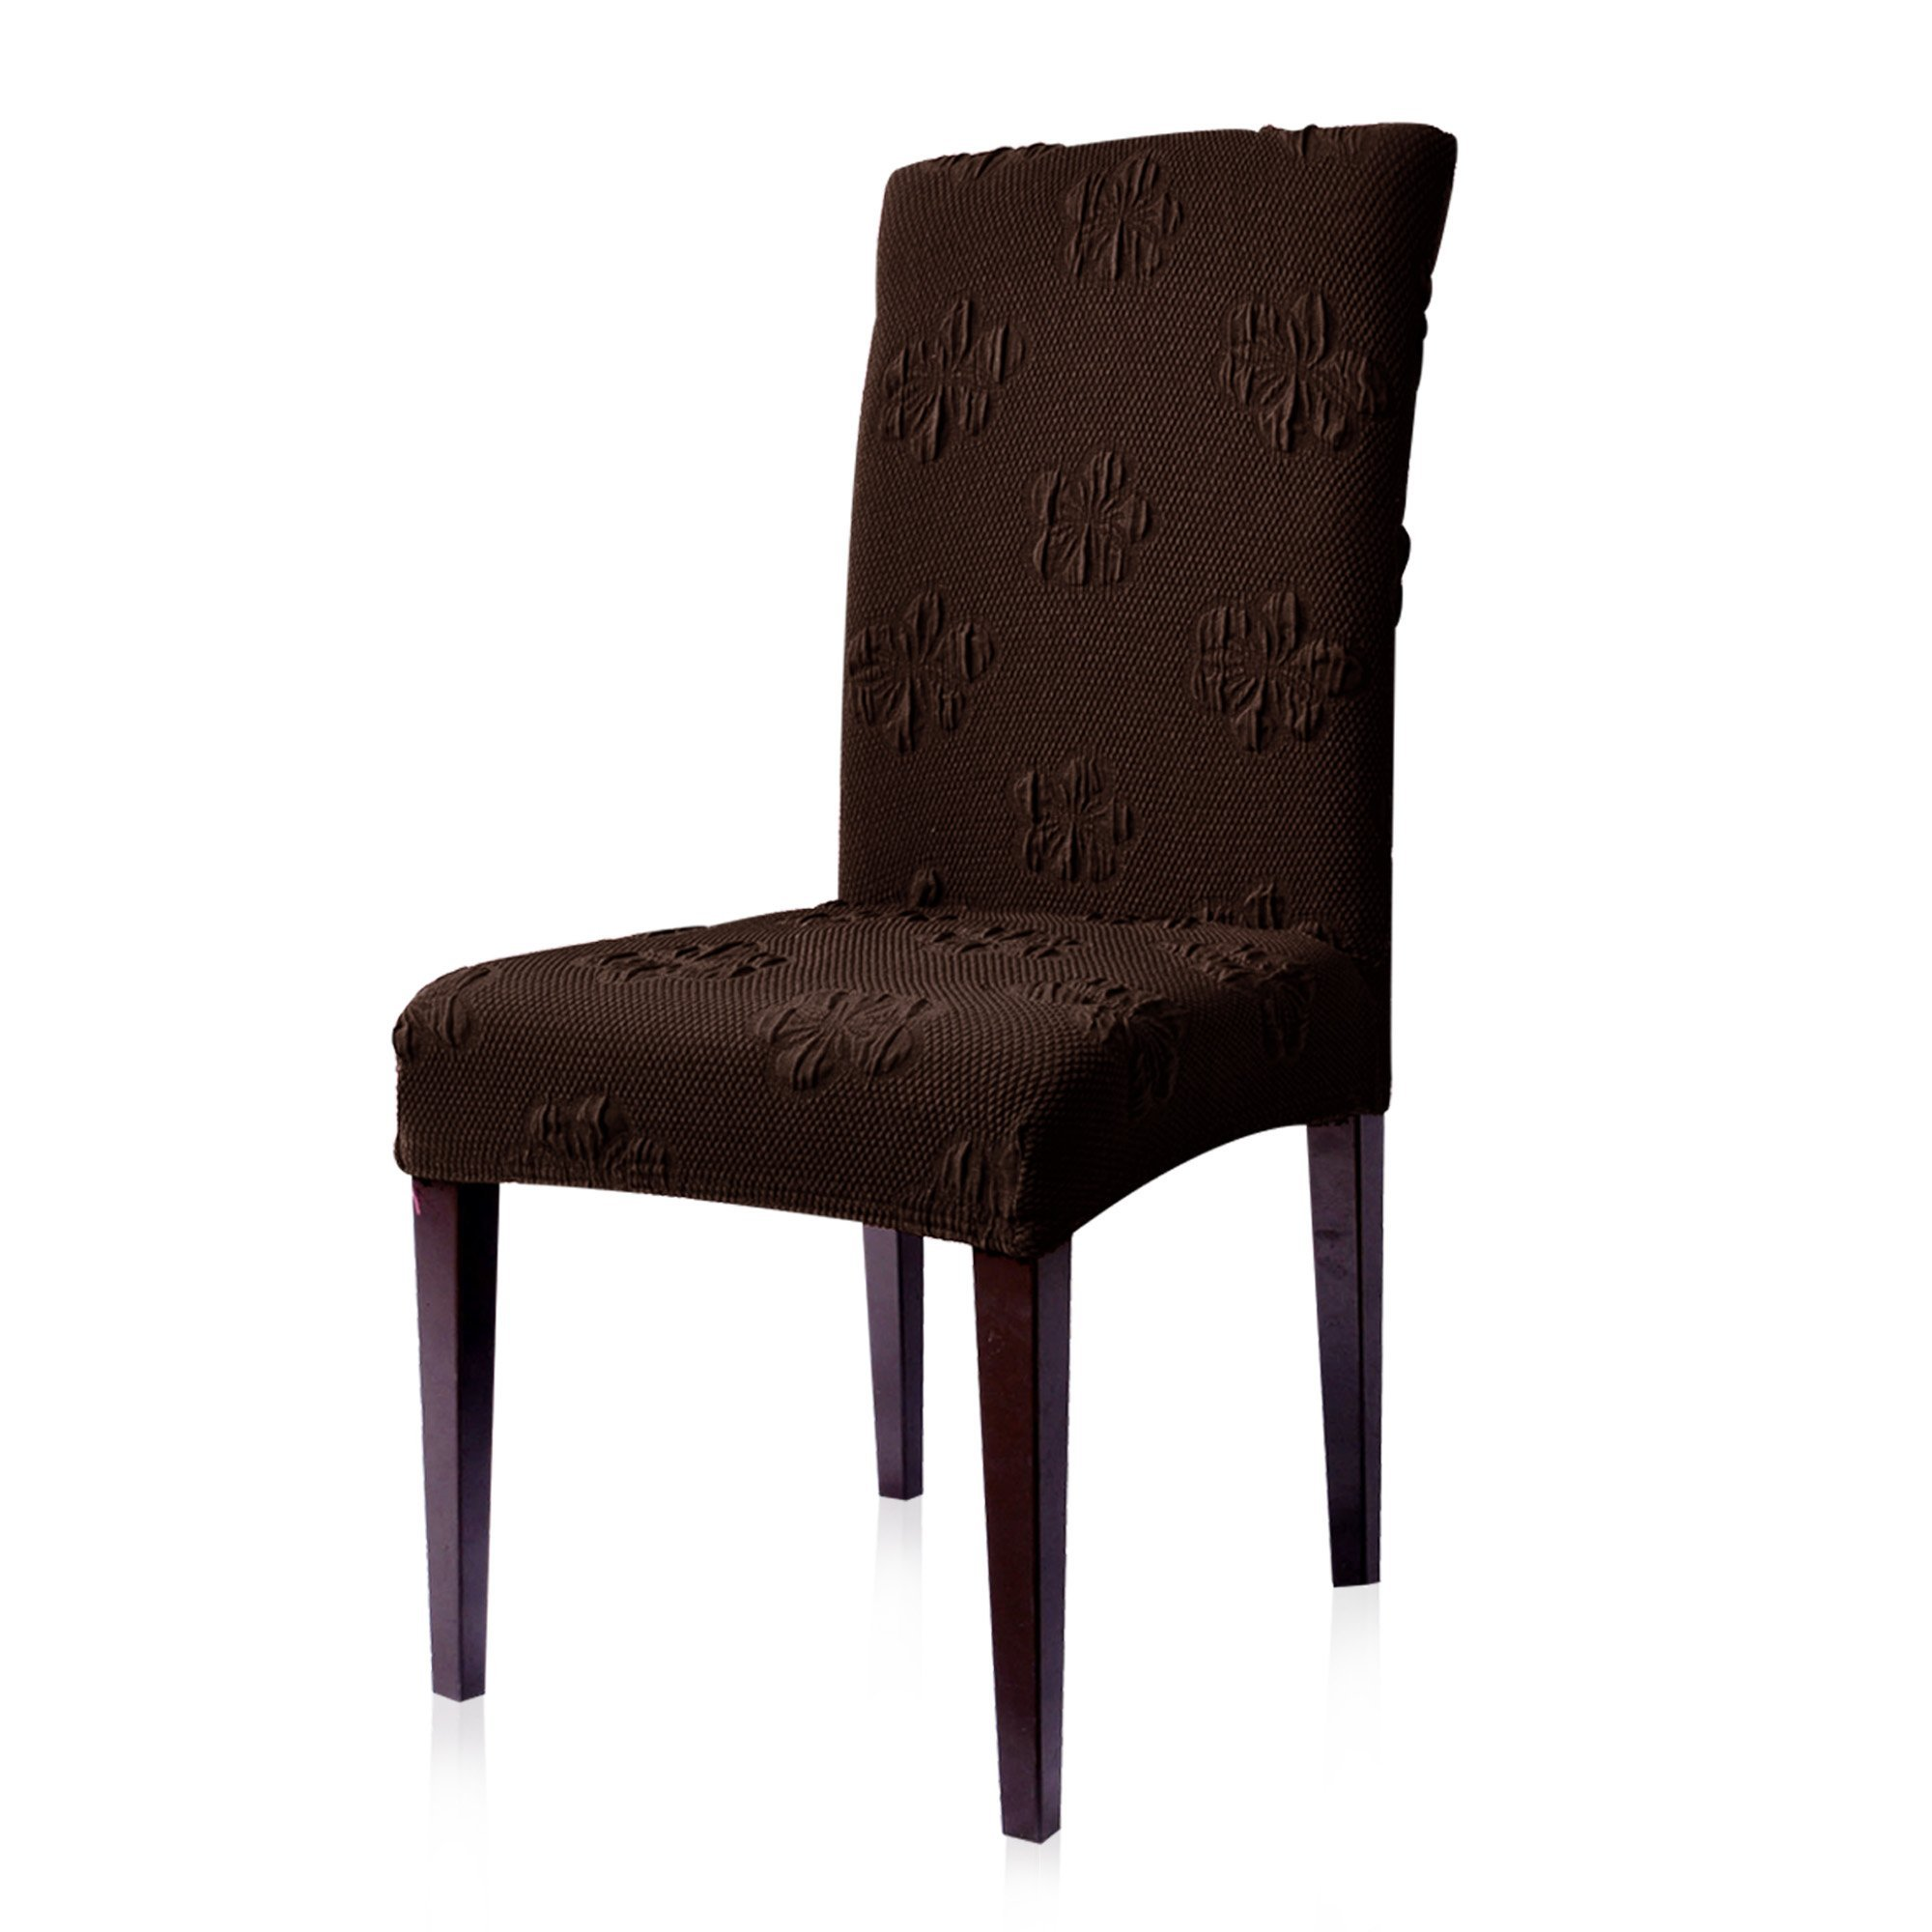 Subrtex Jacquard Stretch Dining Room Chair Slipcovers (4, Chocolate Flower)